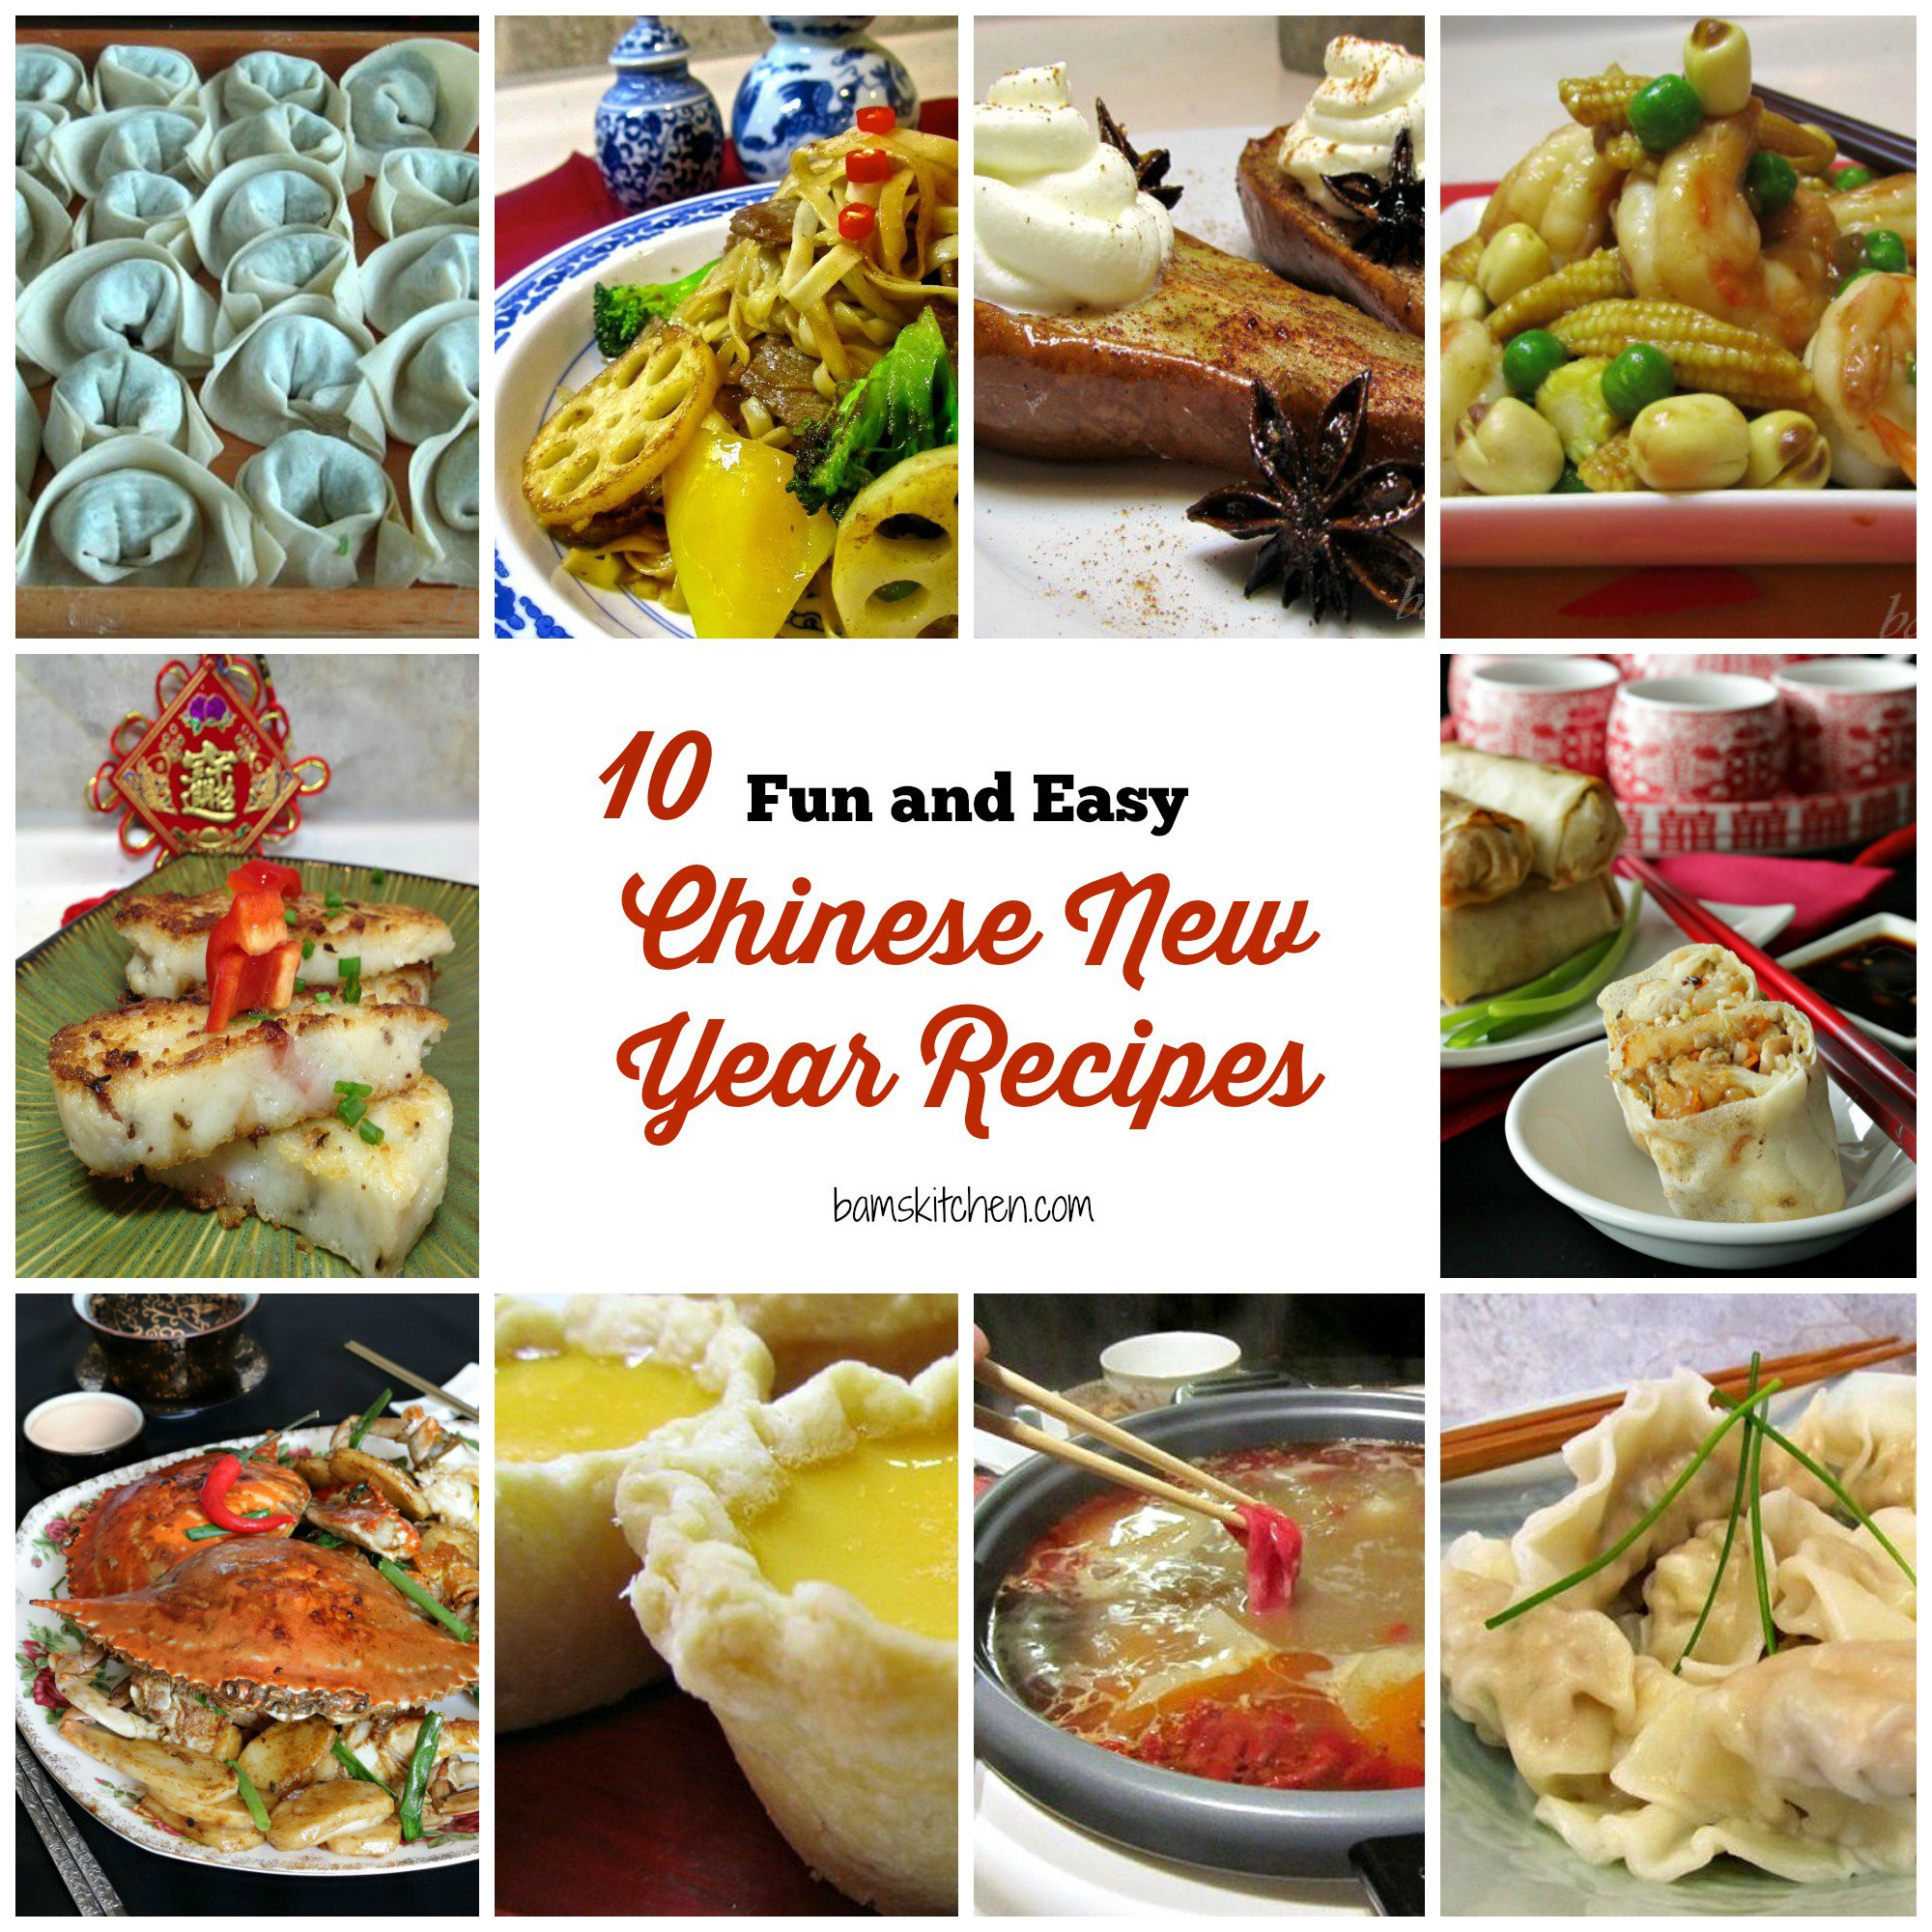 10 Fun And Easy Chinese New Year Recipes